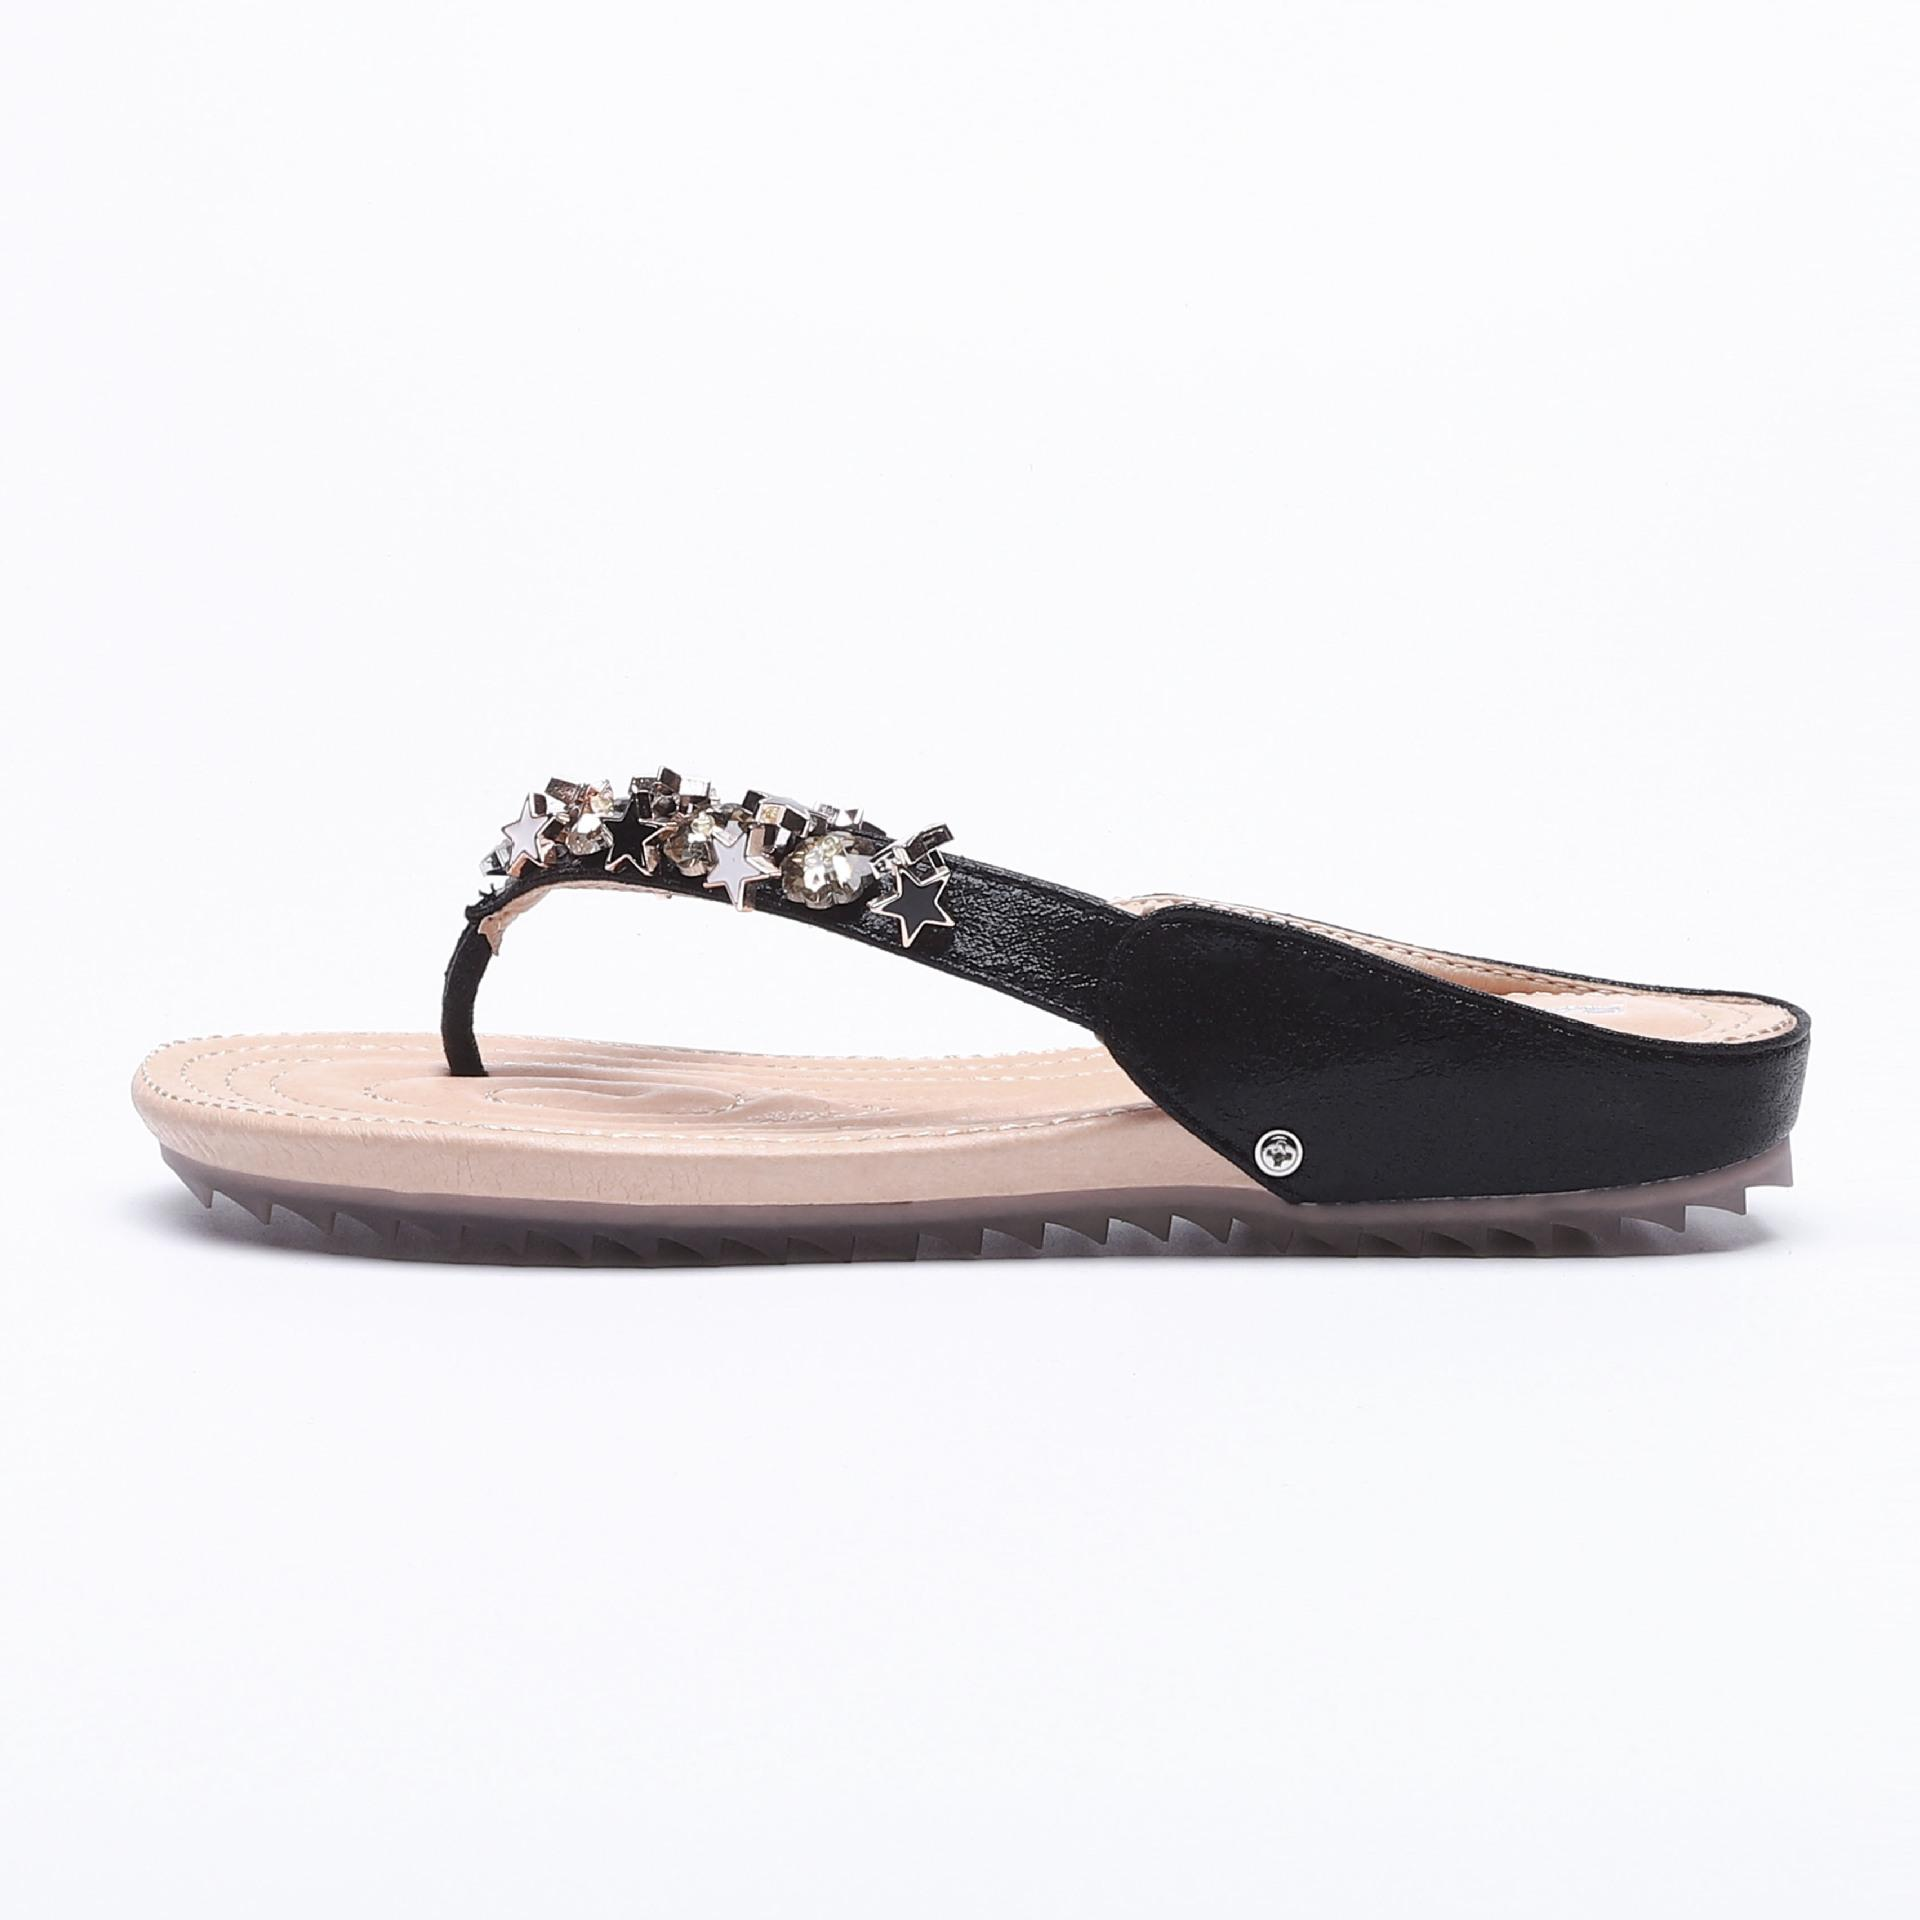 ffe887378189 Casual Print Fashion Outside Women Slippers Open Toe Summer Concise Flat  Flip Flops Crystal Rivet Metal Decoration Women Shoes Online with   63.72 Piece on ...